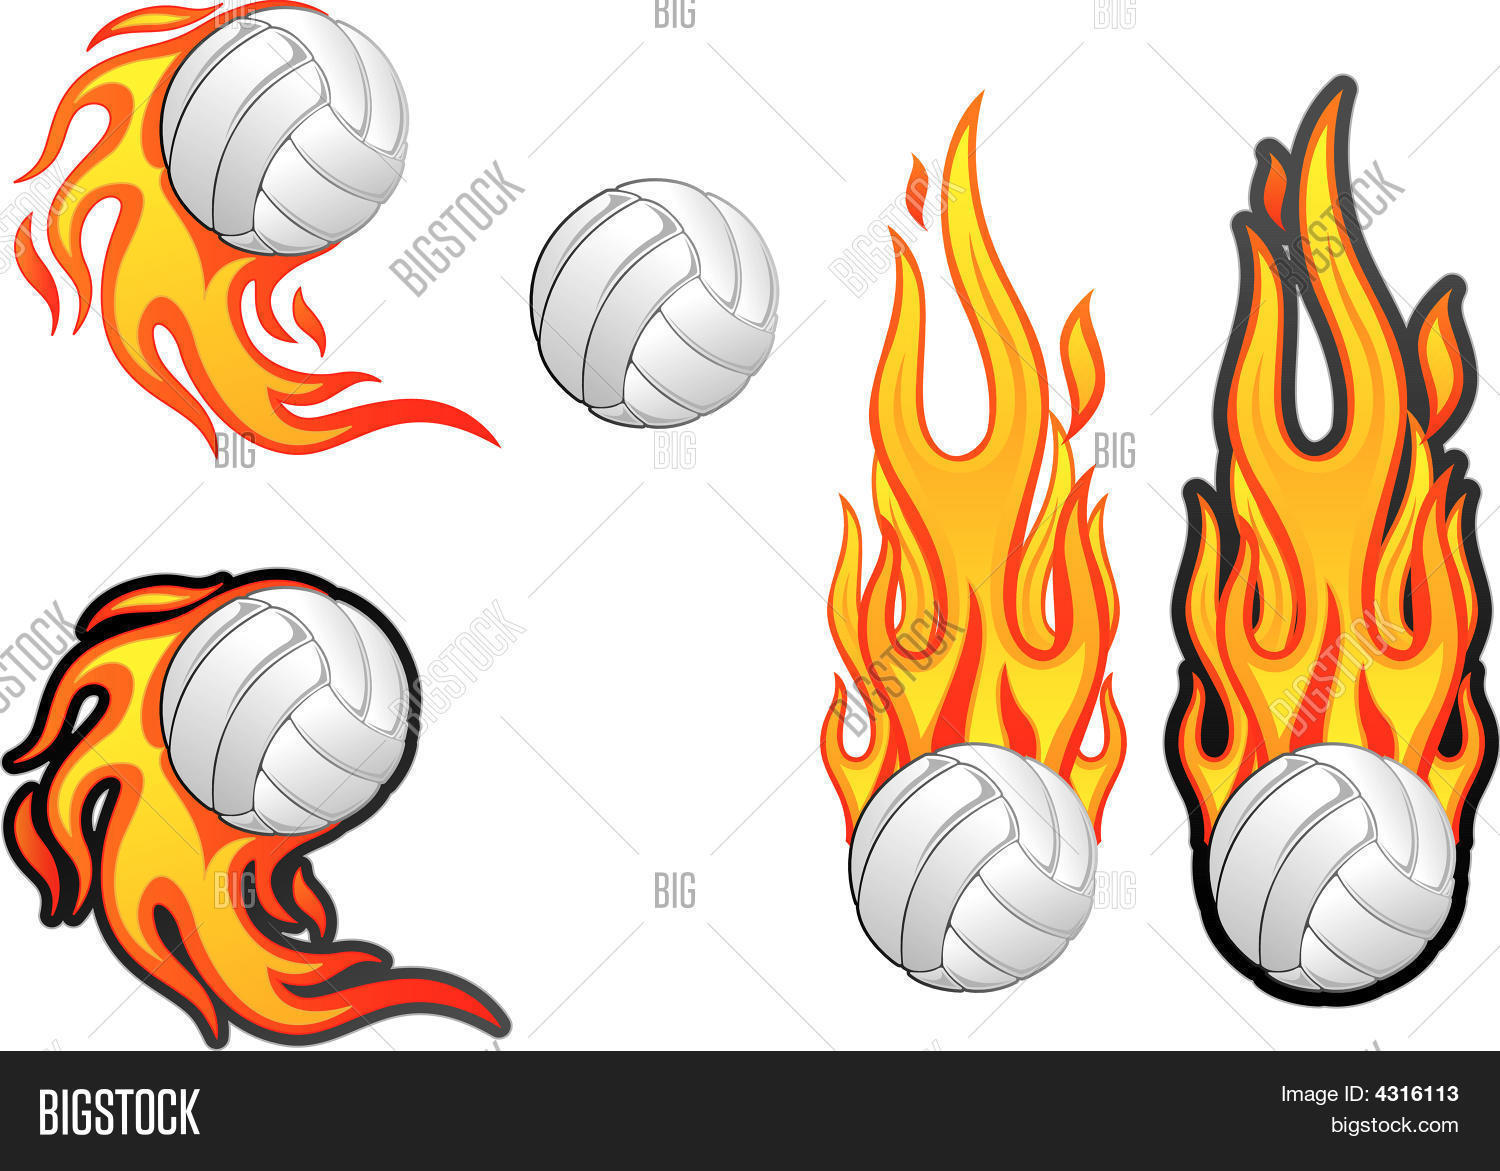 how to draw a volleyball on fire